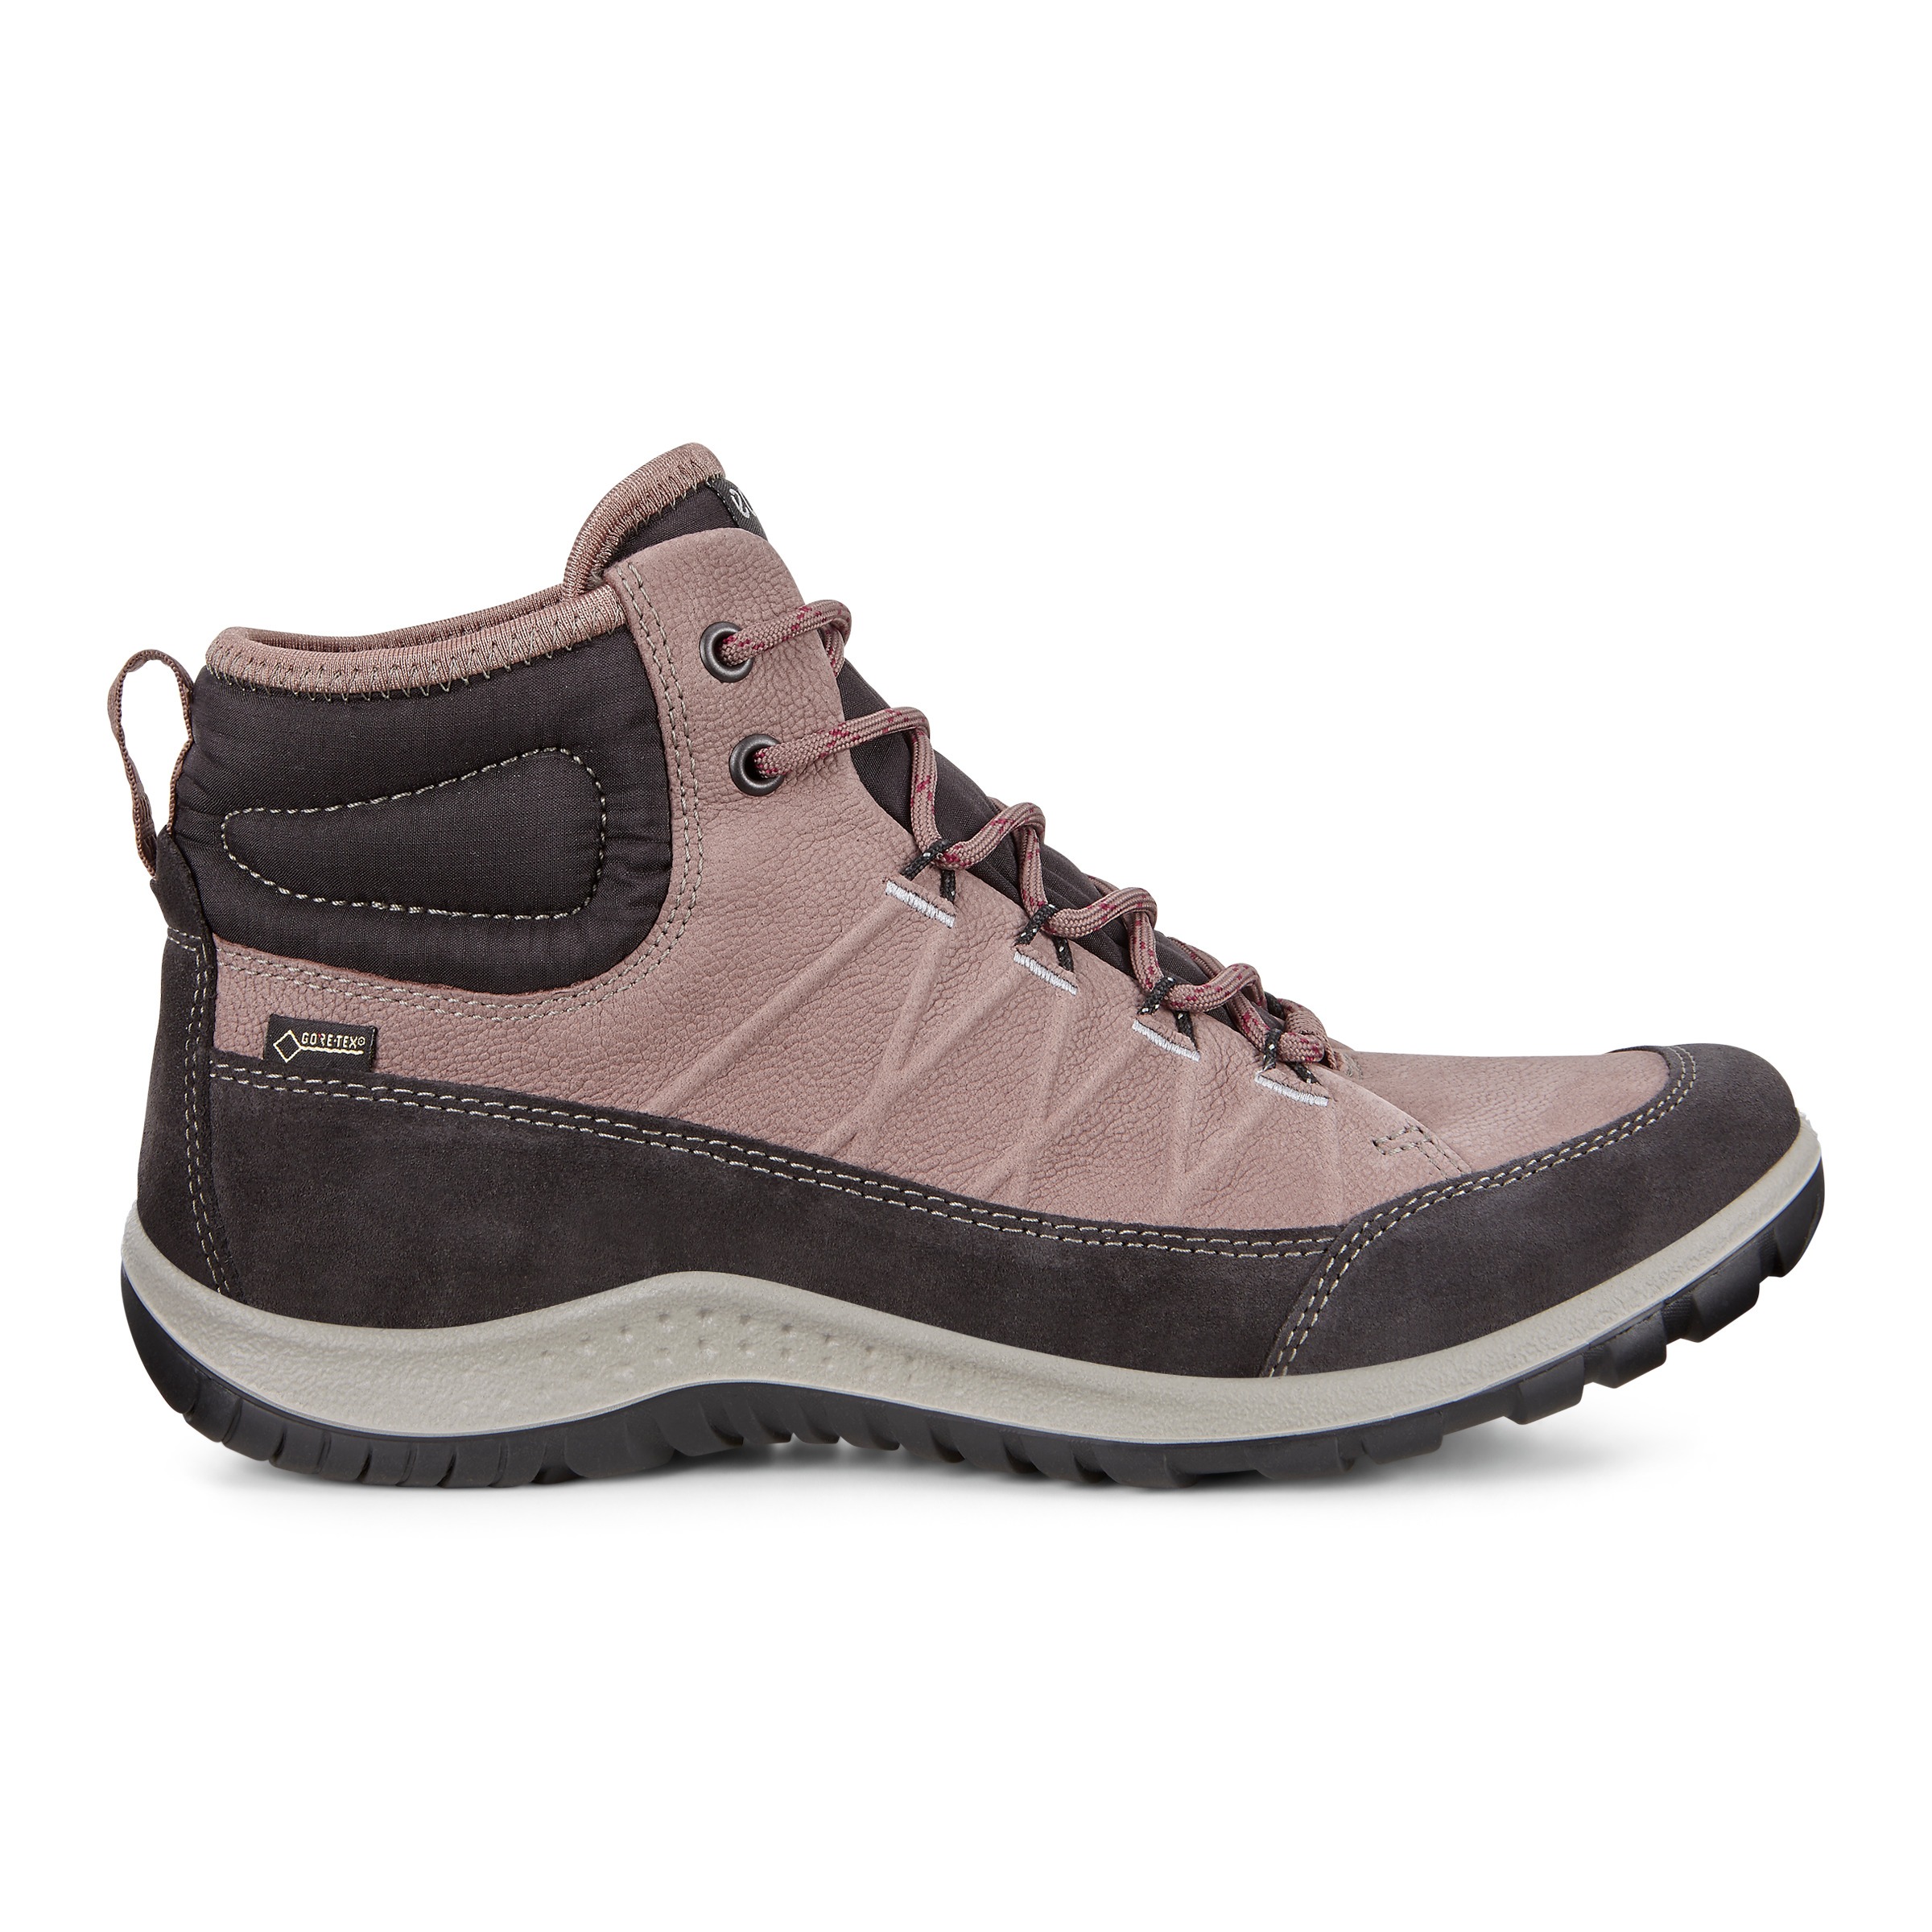 UPC 809704554532 product image for ECCO Womens Aspina GTX High | upcitemdb.com